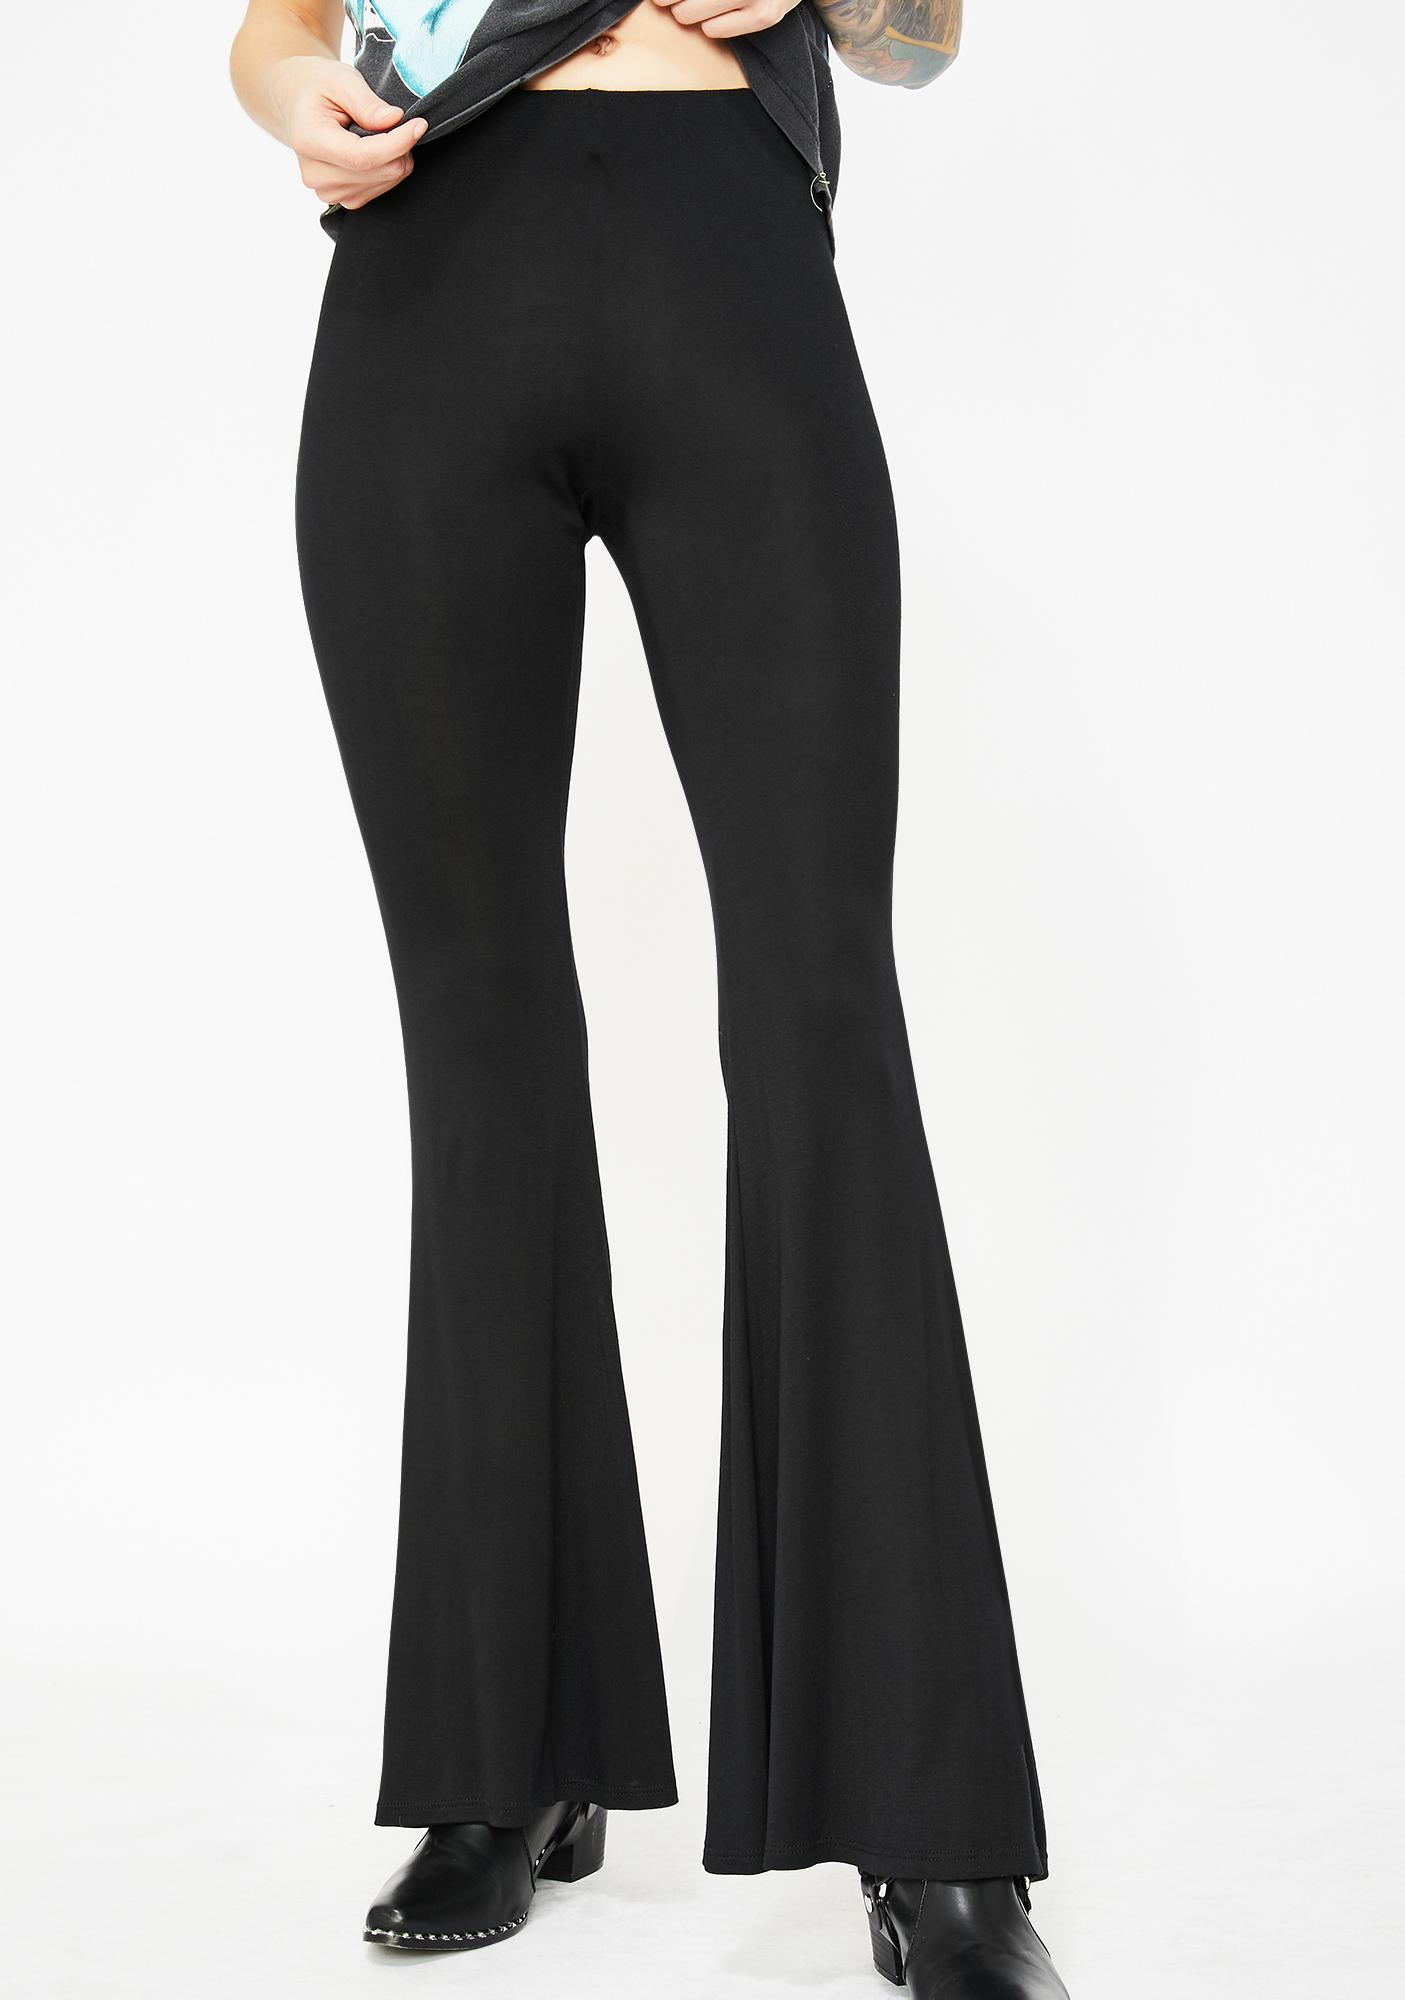 Coming In Hott Flare Pants